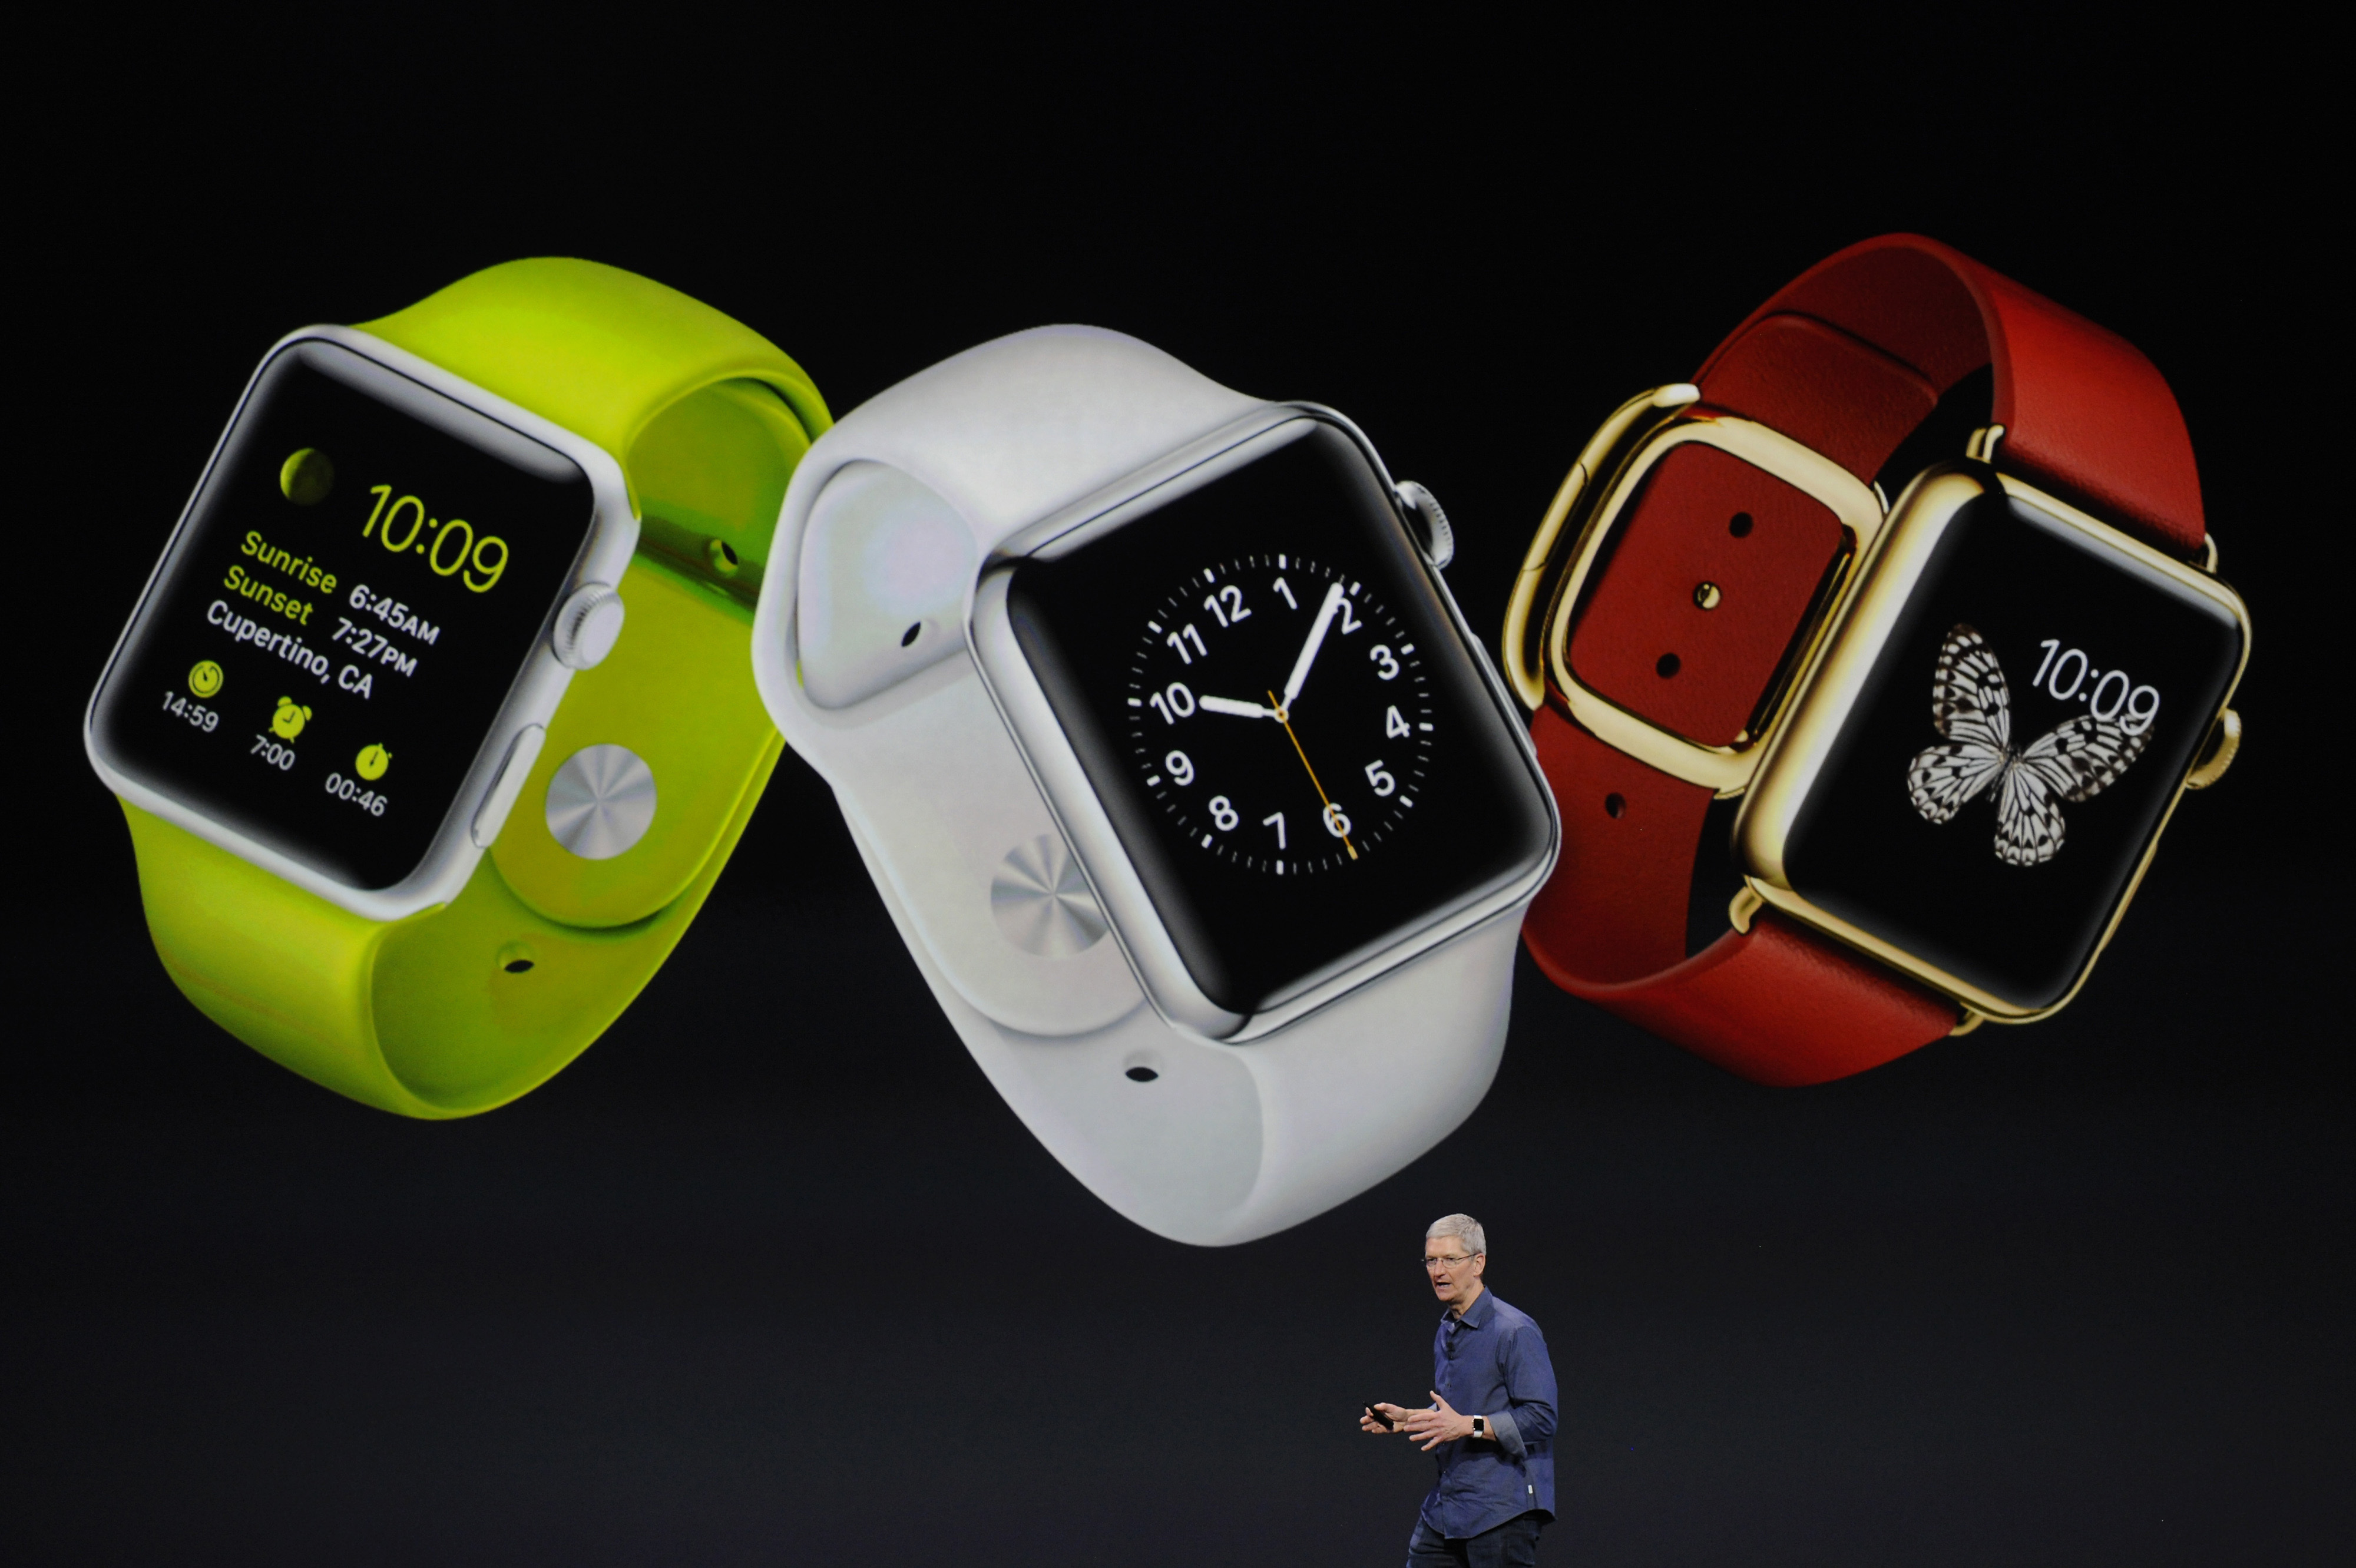 Tim Cook, chief executive officer of Apple Inc., unveils the Apple Watch during a product announcement at Flint Center in Cupertino, California, U.S., on Tuesday, Sept. 9, 2014.